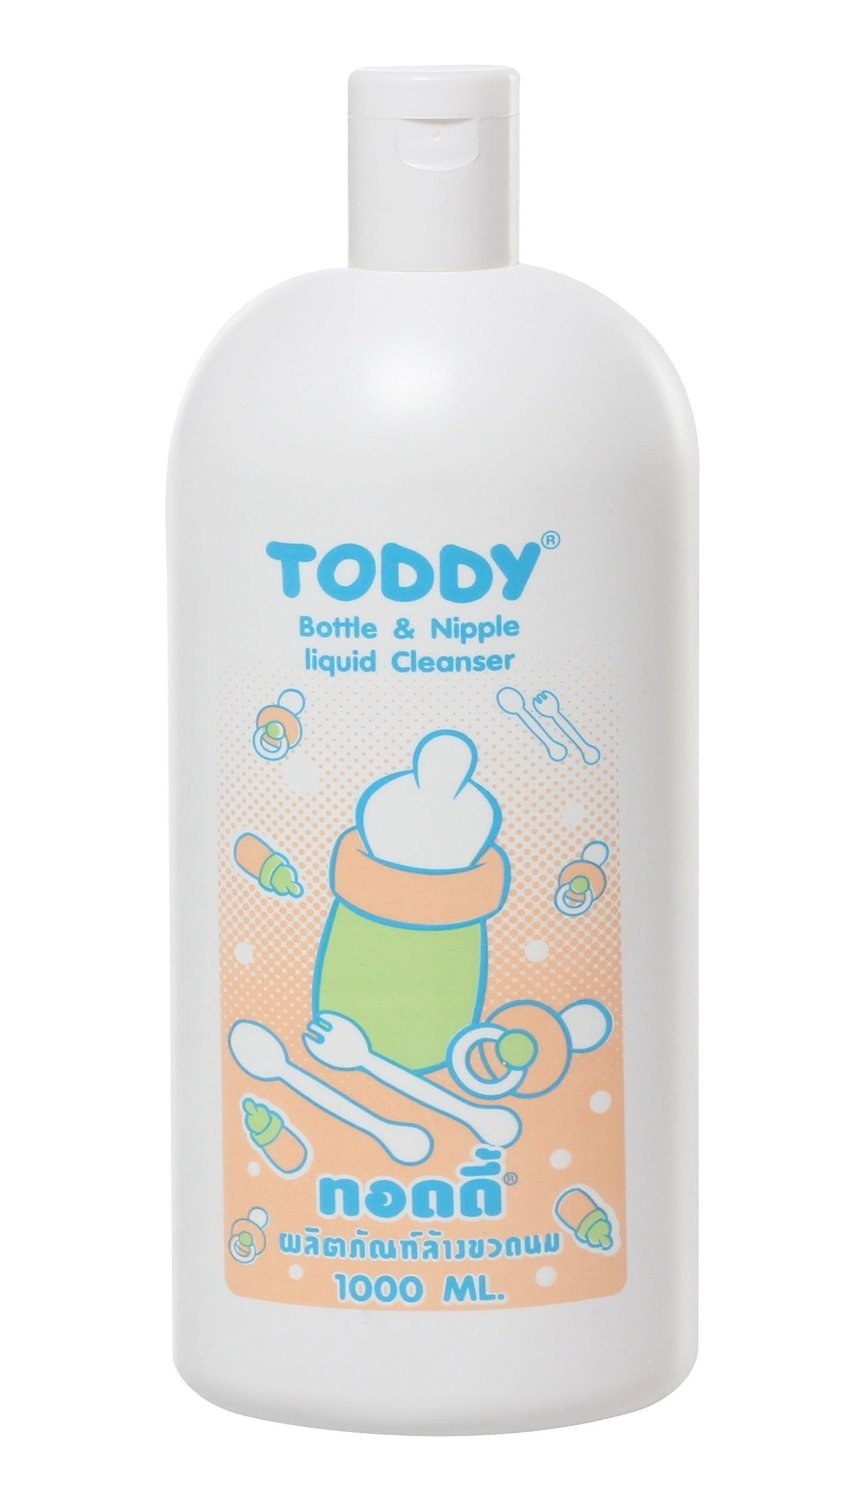 Toddy Bottle Nipple Liquid Cleanser 1000ml Cussons Baby 300 100ml Buy Online At Low Prices In India